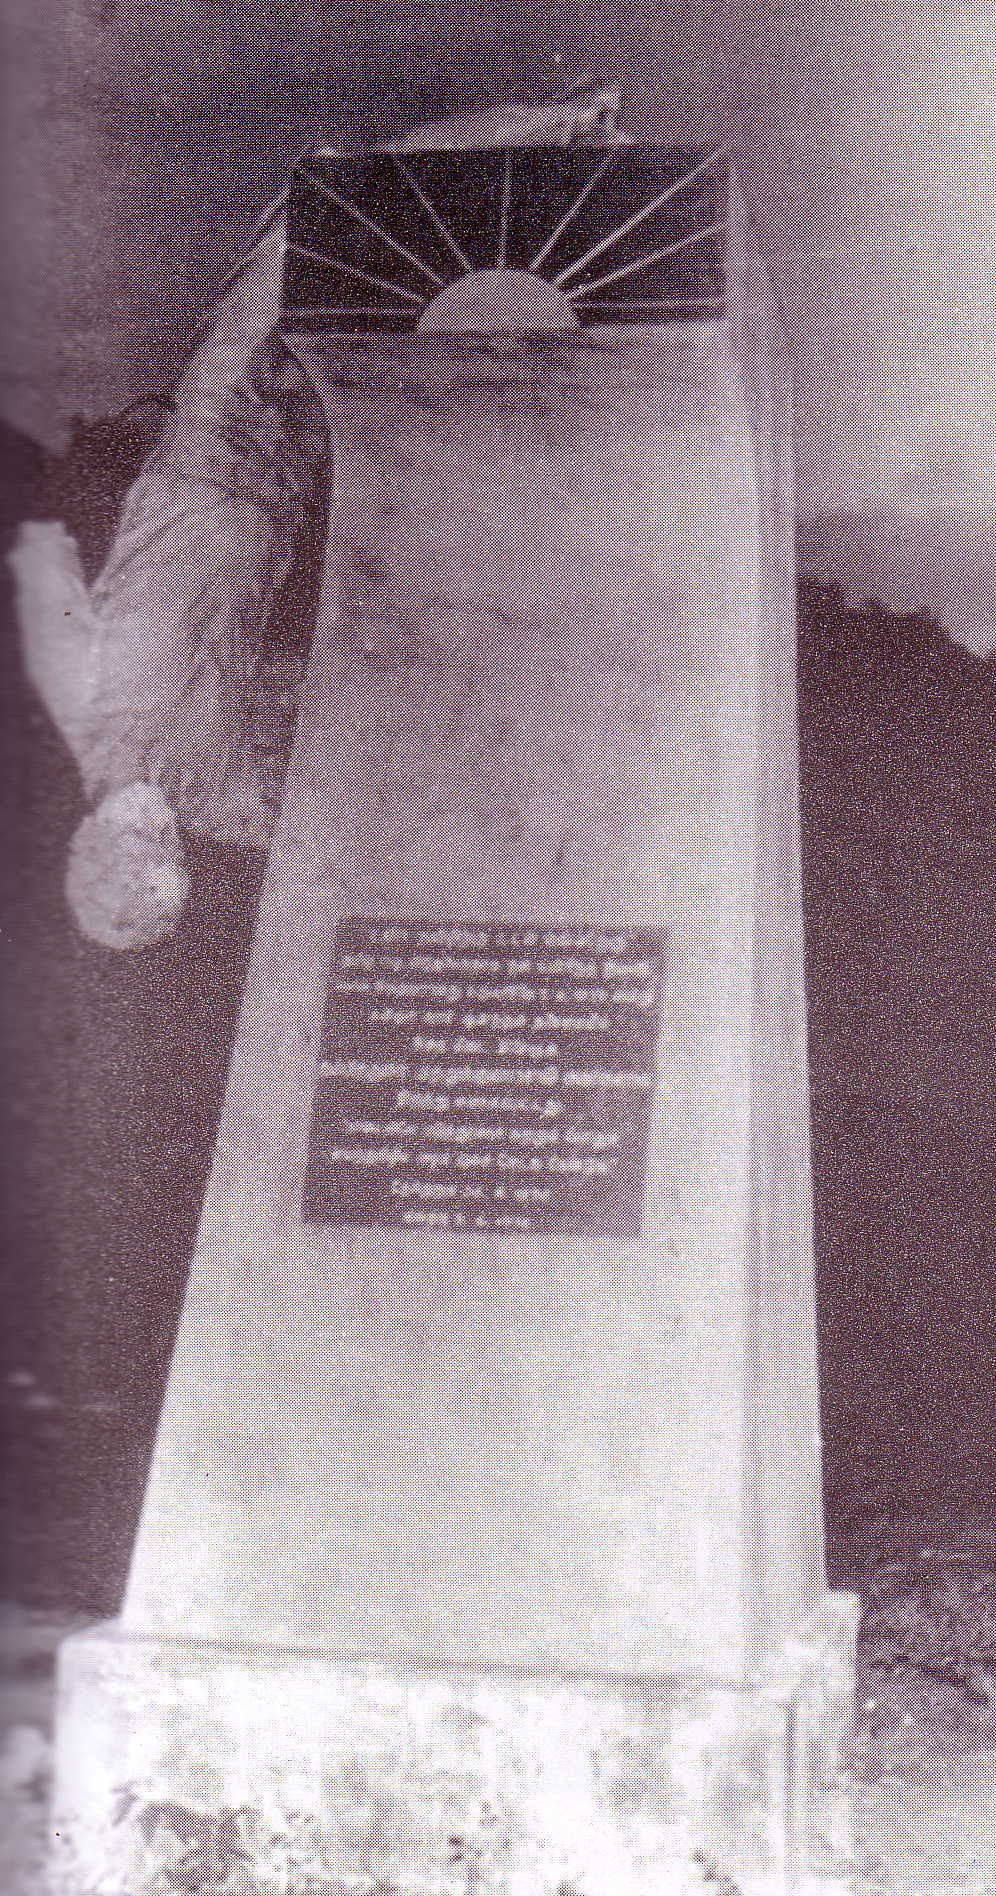 Vandalized statue of Pon Sivakumaran